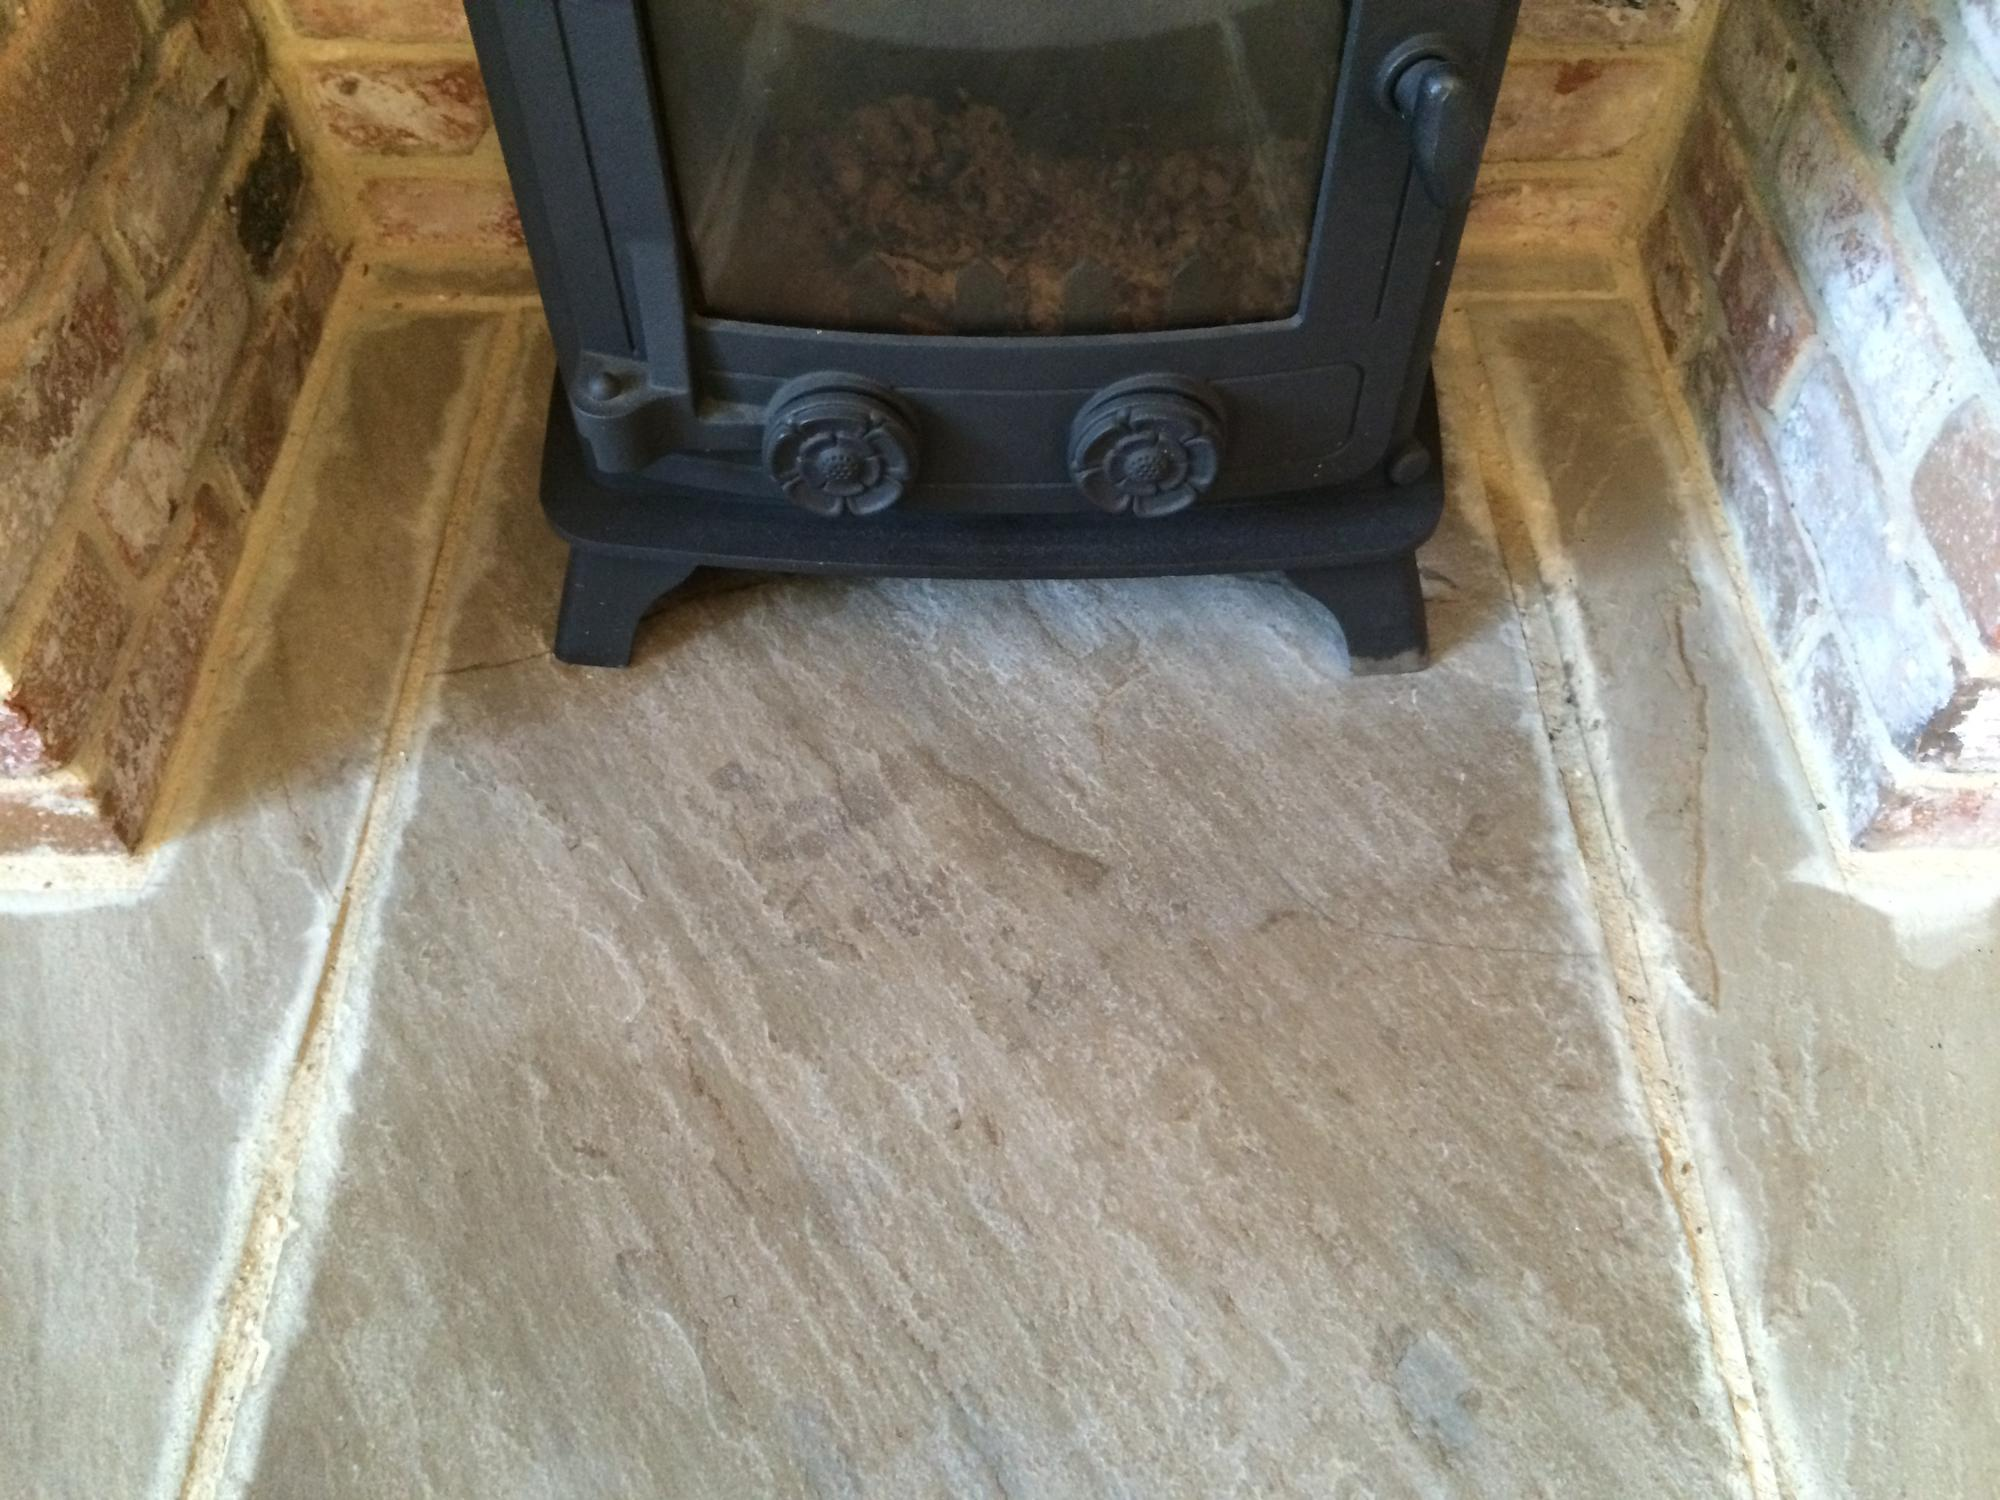 York stone fireplace hearth oil stain removal | Bespoke Repairs